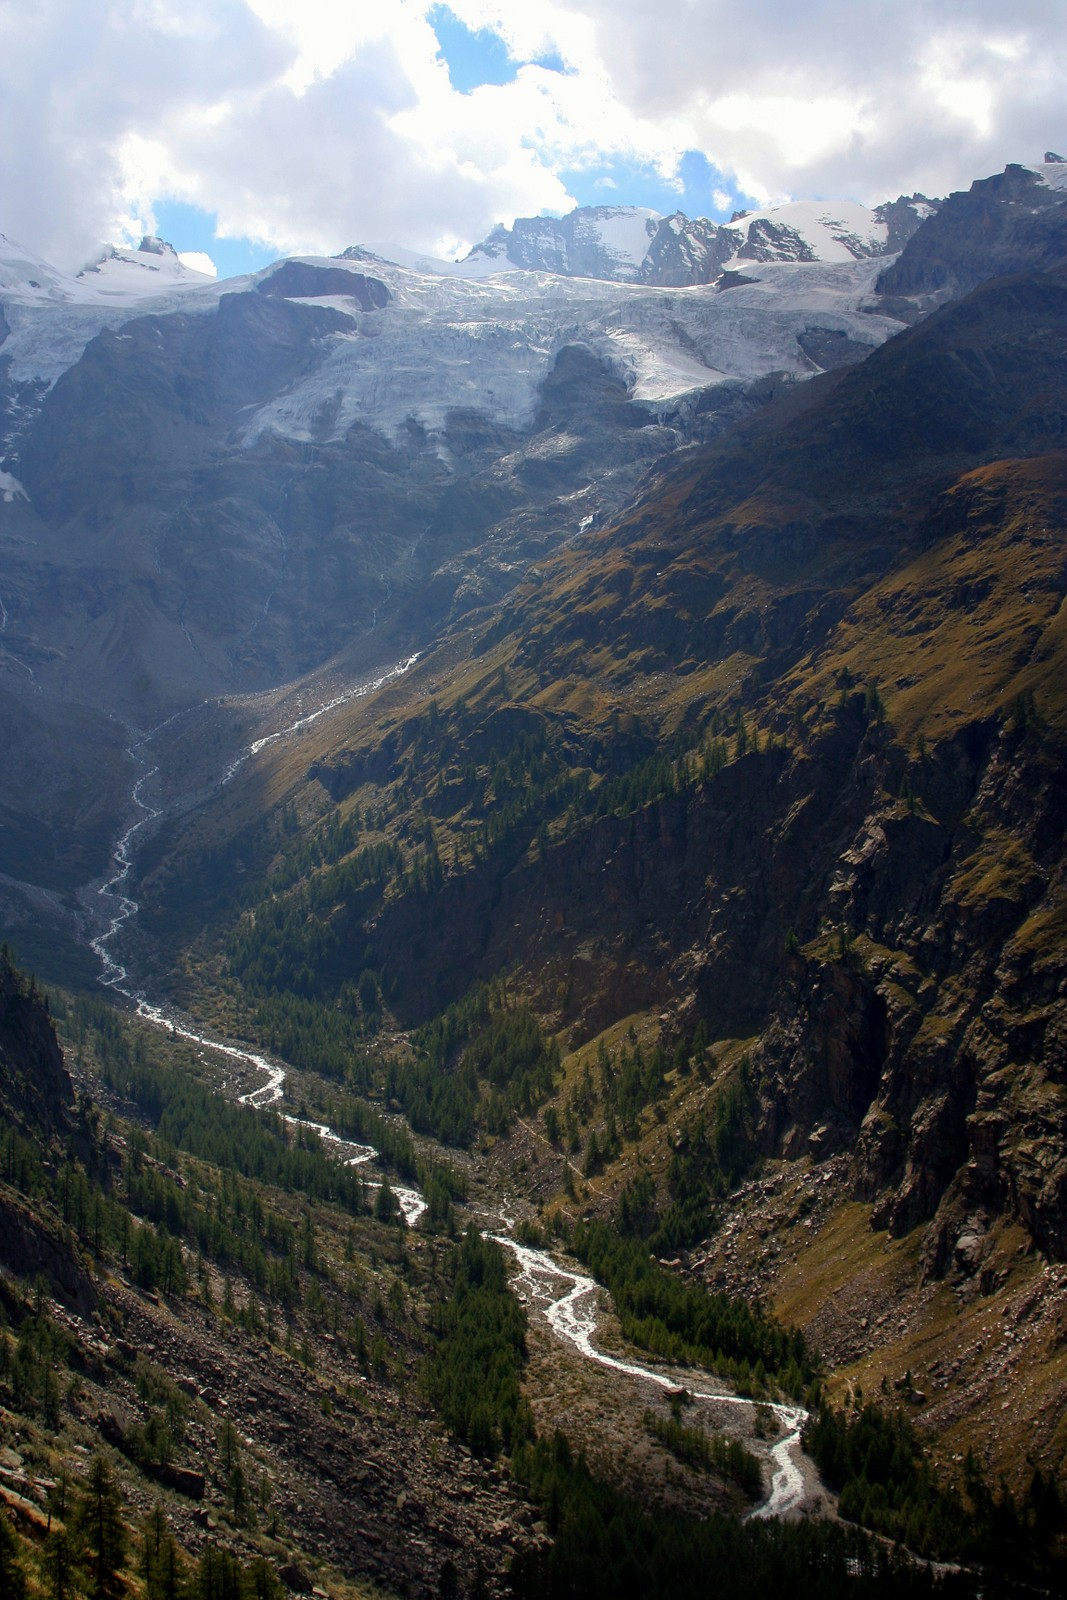 Gran Paradiso Peak and the Valnontey Valley